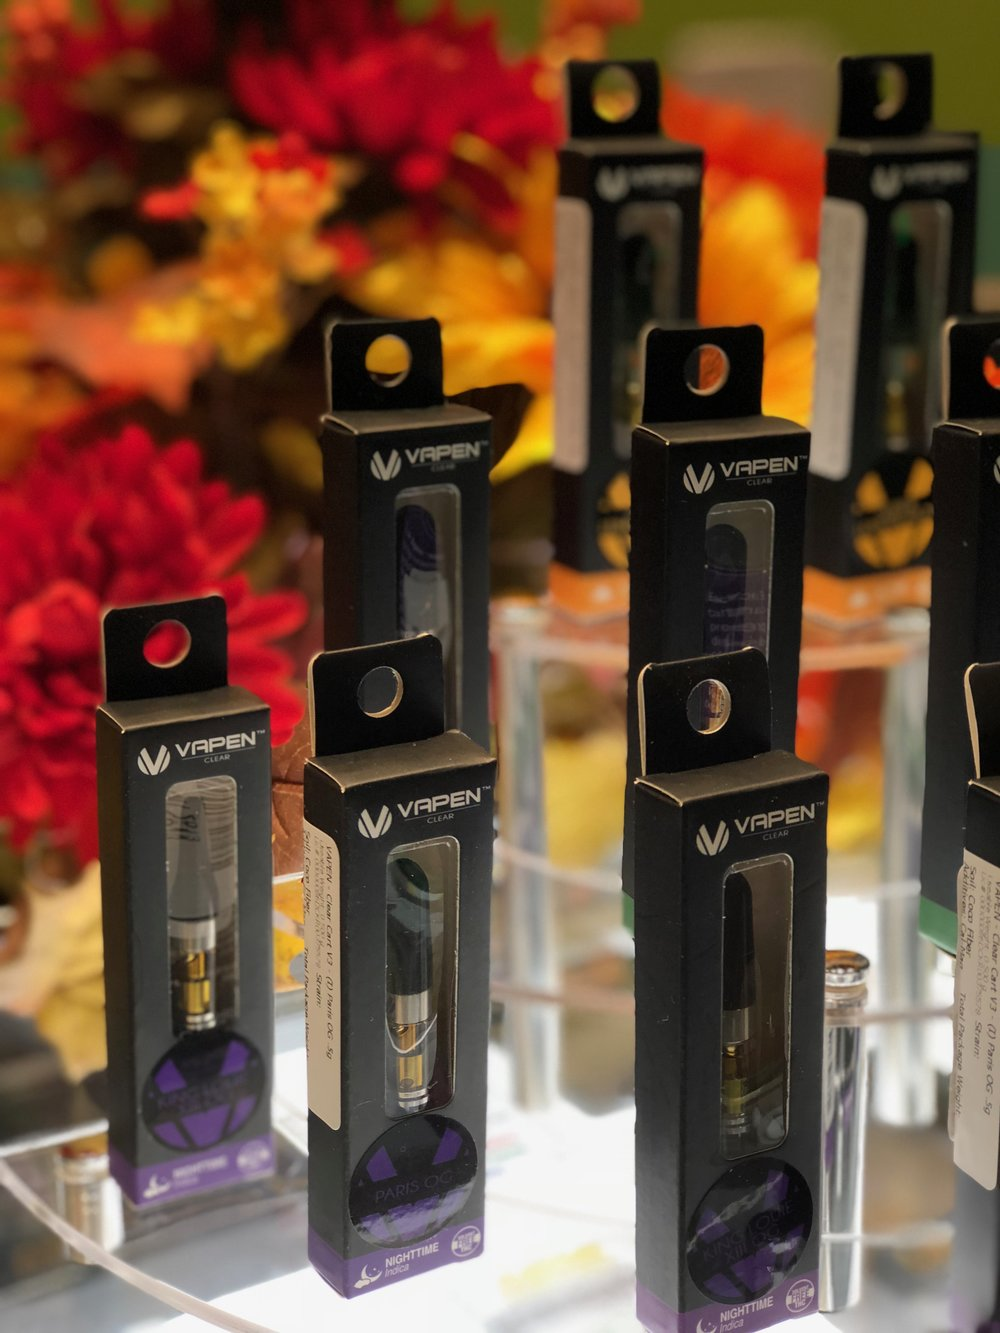 Vapen BOGO - Purchase any Vapen cartridge and recieve one for free!!No limit, while supplies last